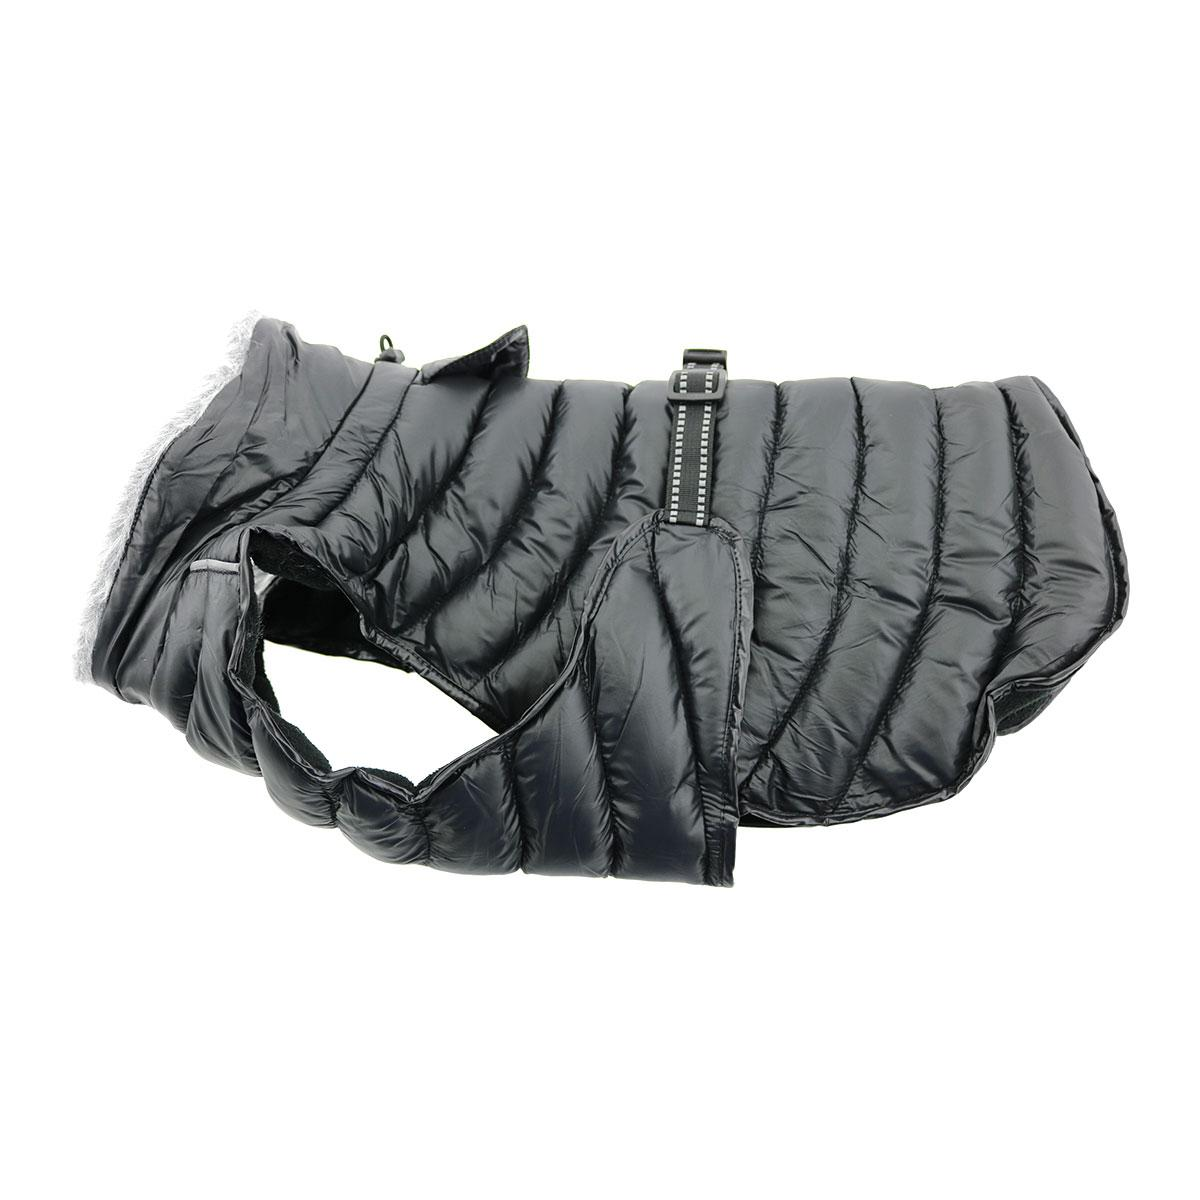 Doggie Design Alpine Extreme Weather Puffer Coat for Dogs, Black, X-Small